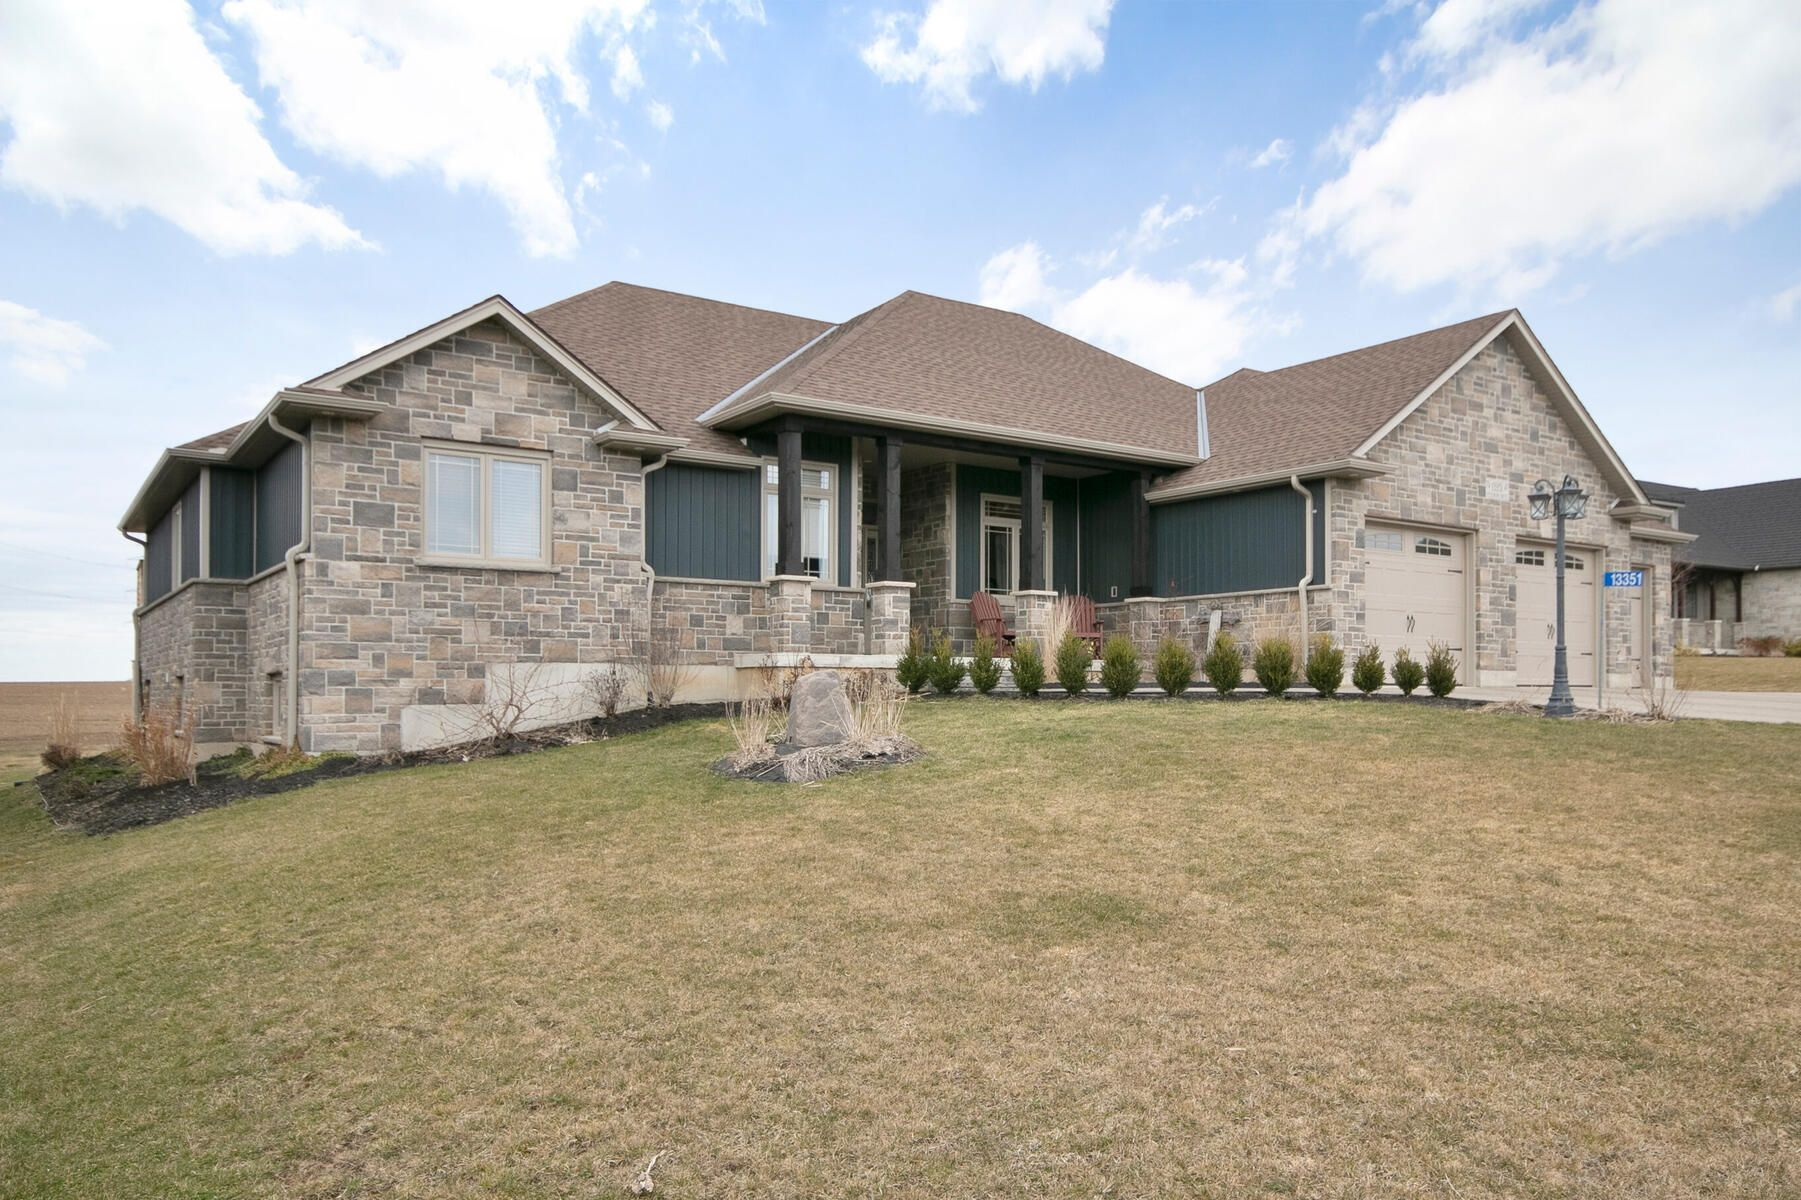 Main Photo: 13351 Westbury Drive in Springfield: Residential for sale : MLS®# 40086905